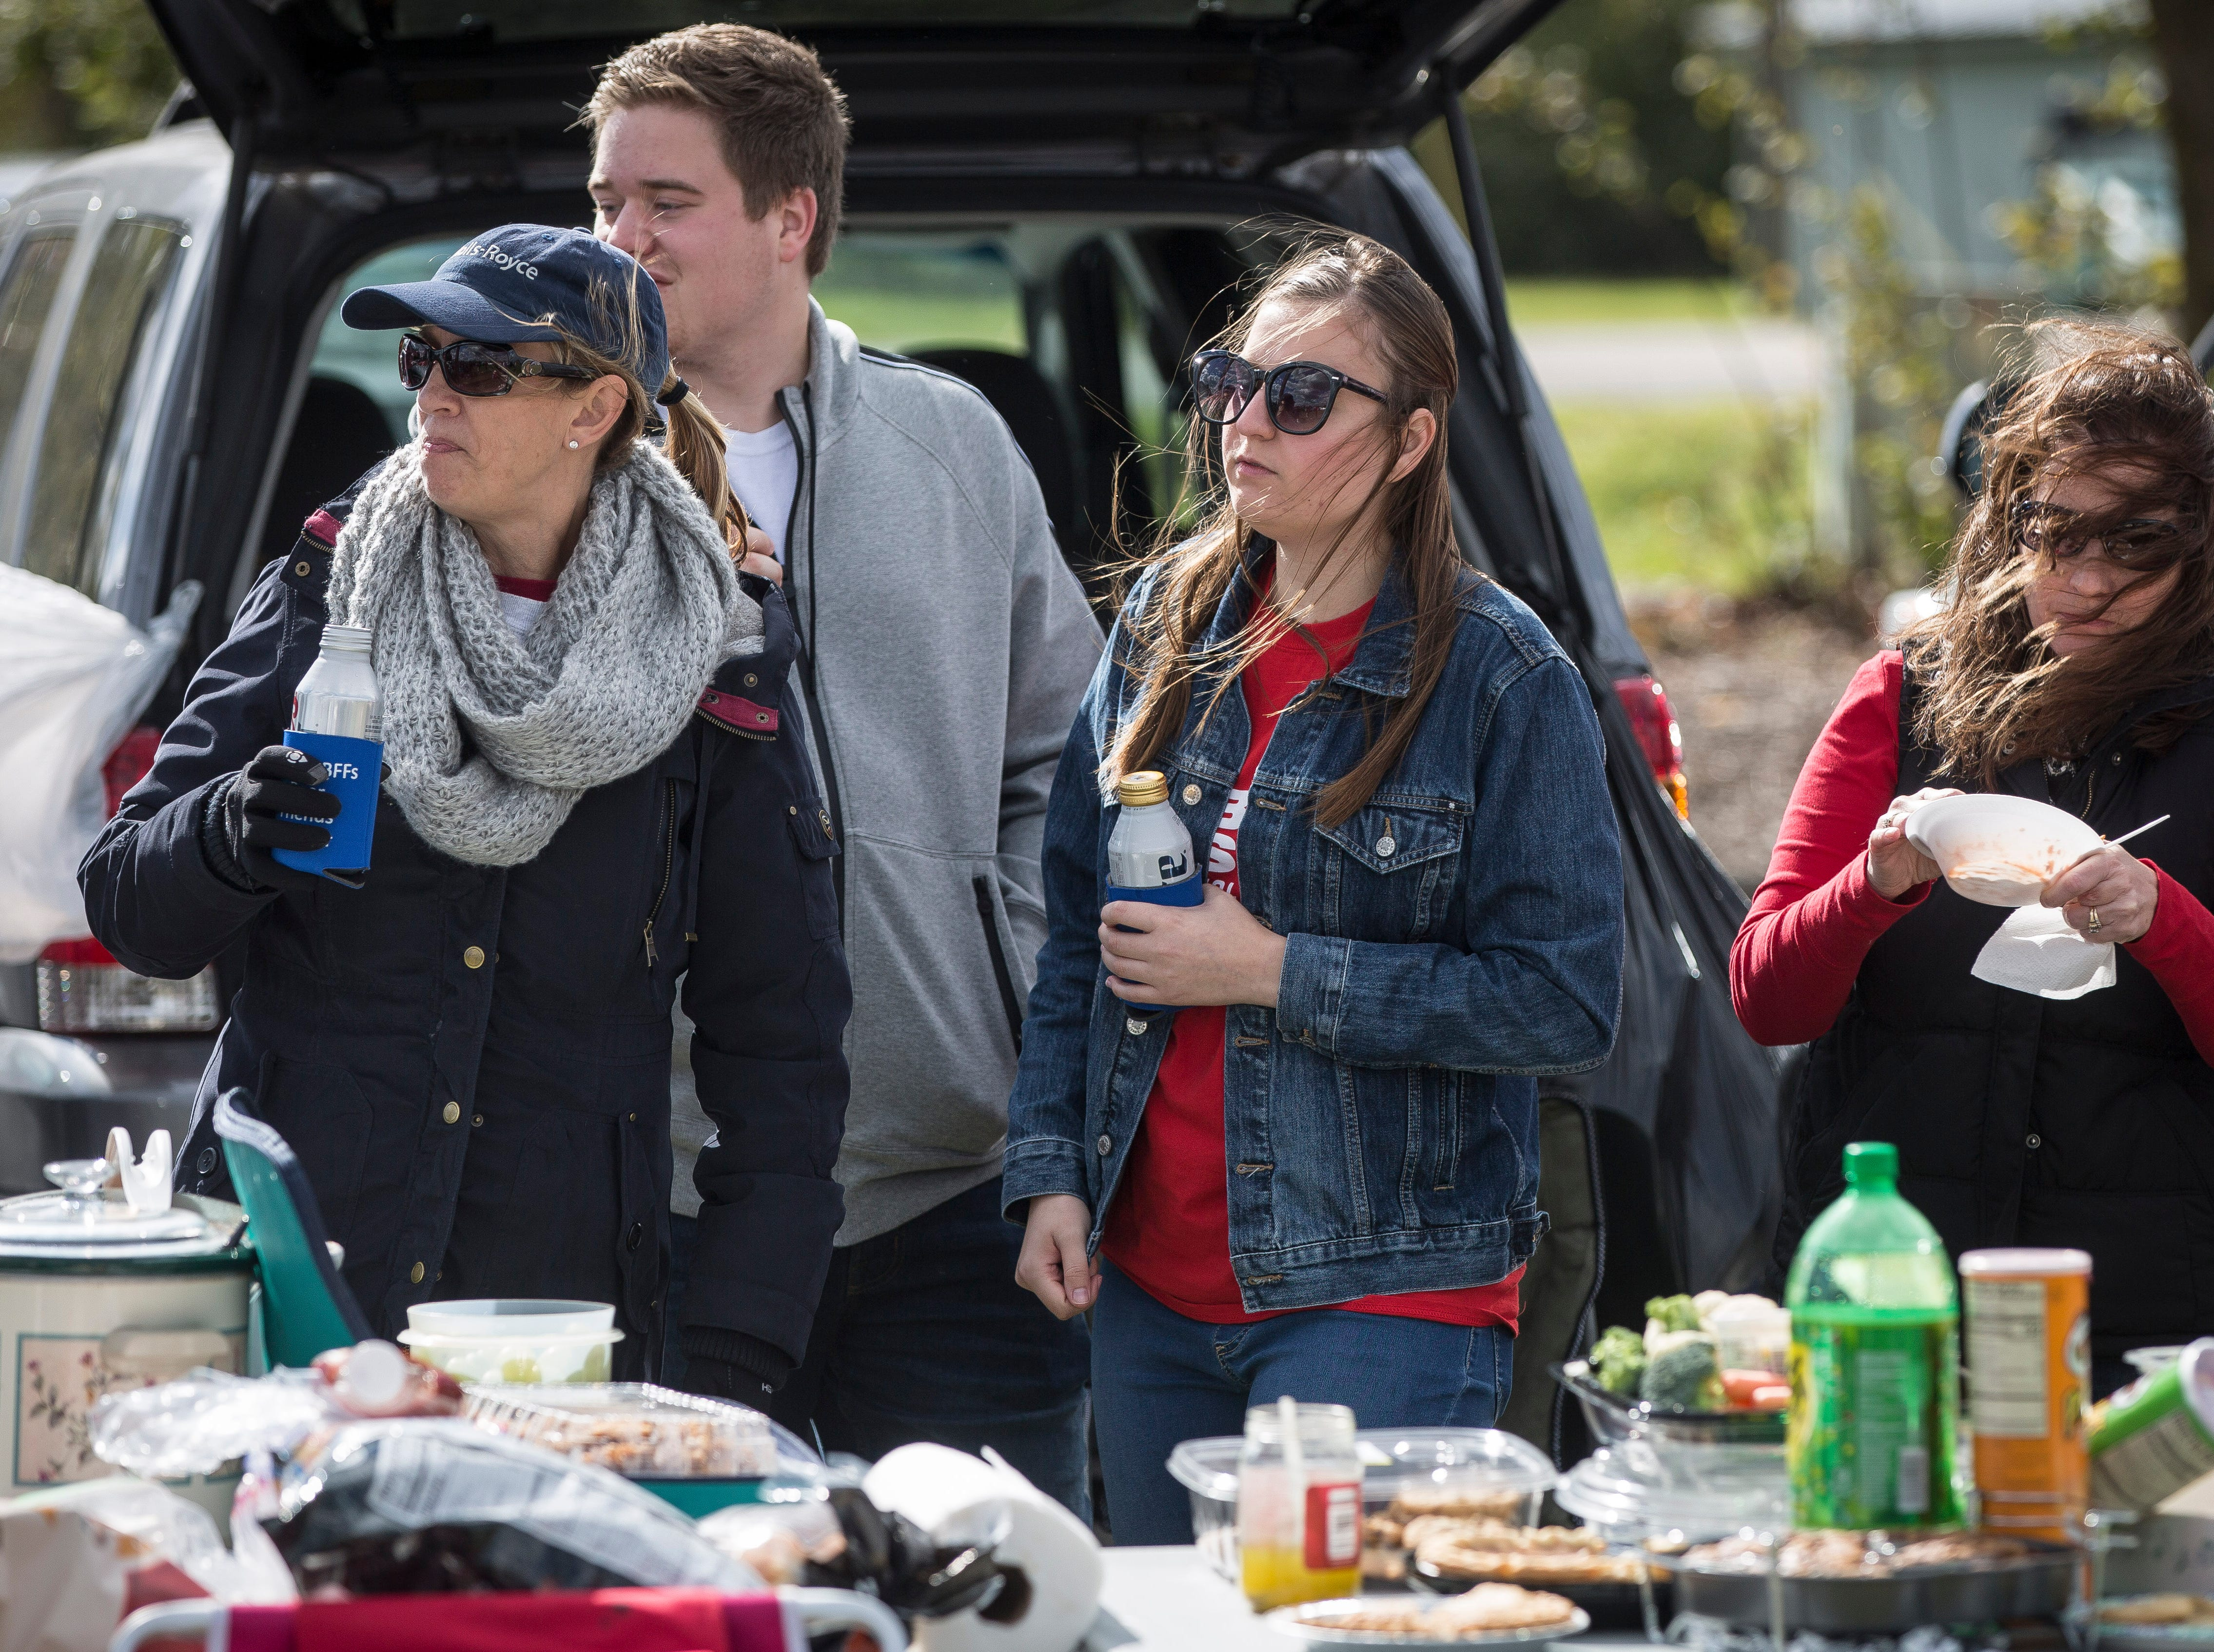 Students and alumni take to the tailgate lots of Sheumann Stadium Saturday afternoon for homecoming tailgating. The annual homecoming week features dozens of events to celebrate the event.